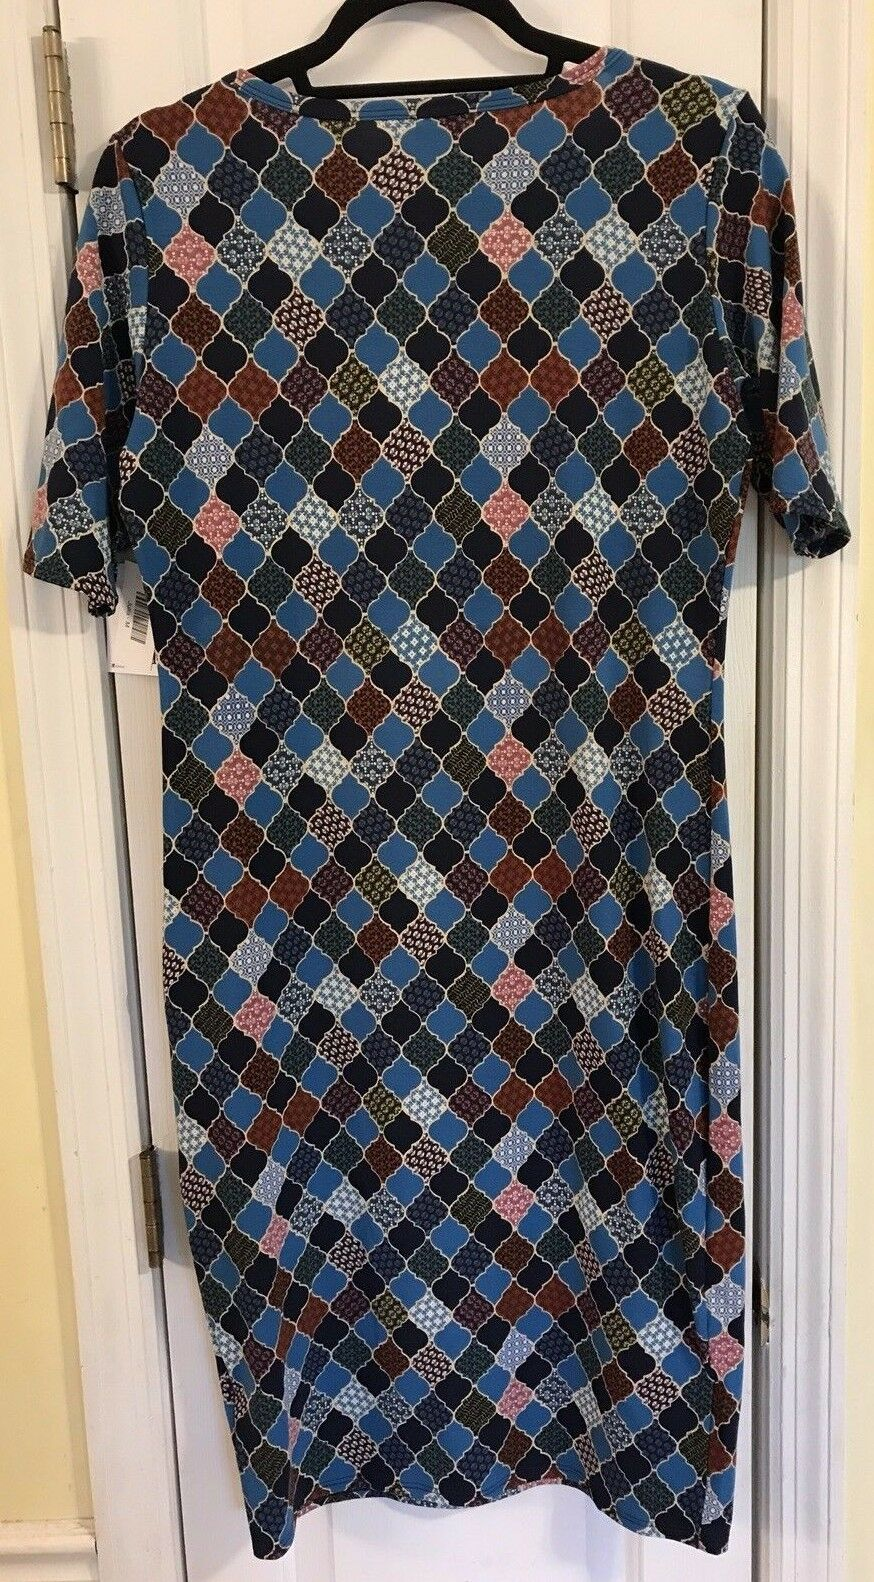 NWT NWT NWT LULAROE JULIA M TEAL blueE, NAVY, RED & LINDSAY M RED HEATHERED OUTFIT, WOW  dd33a6